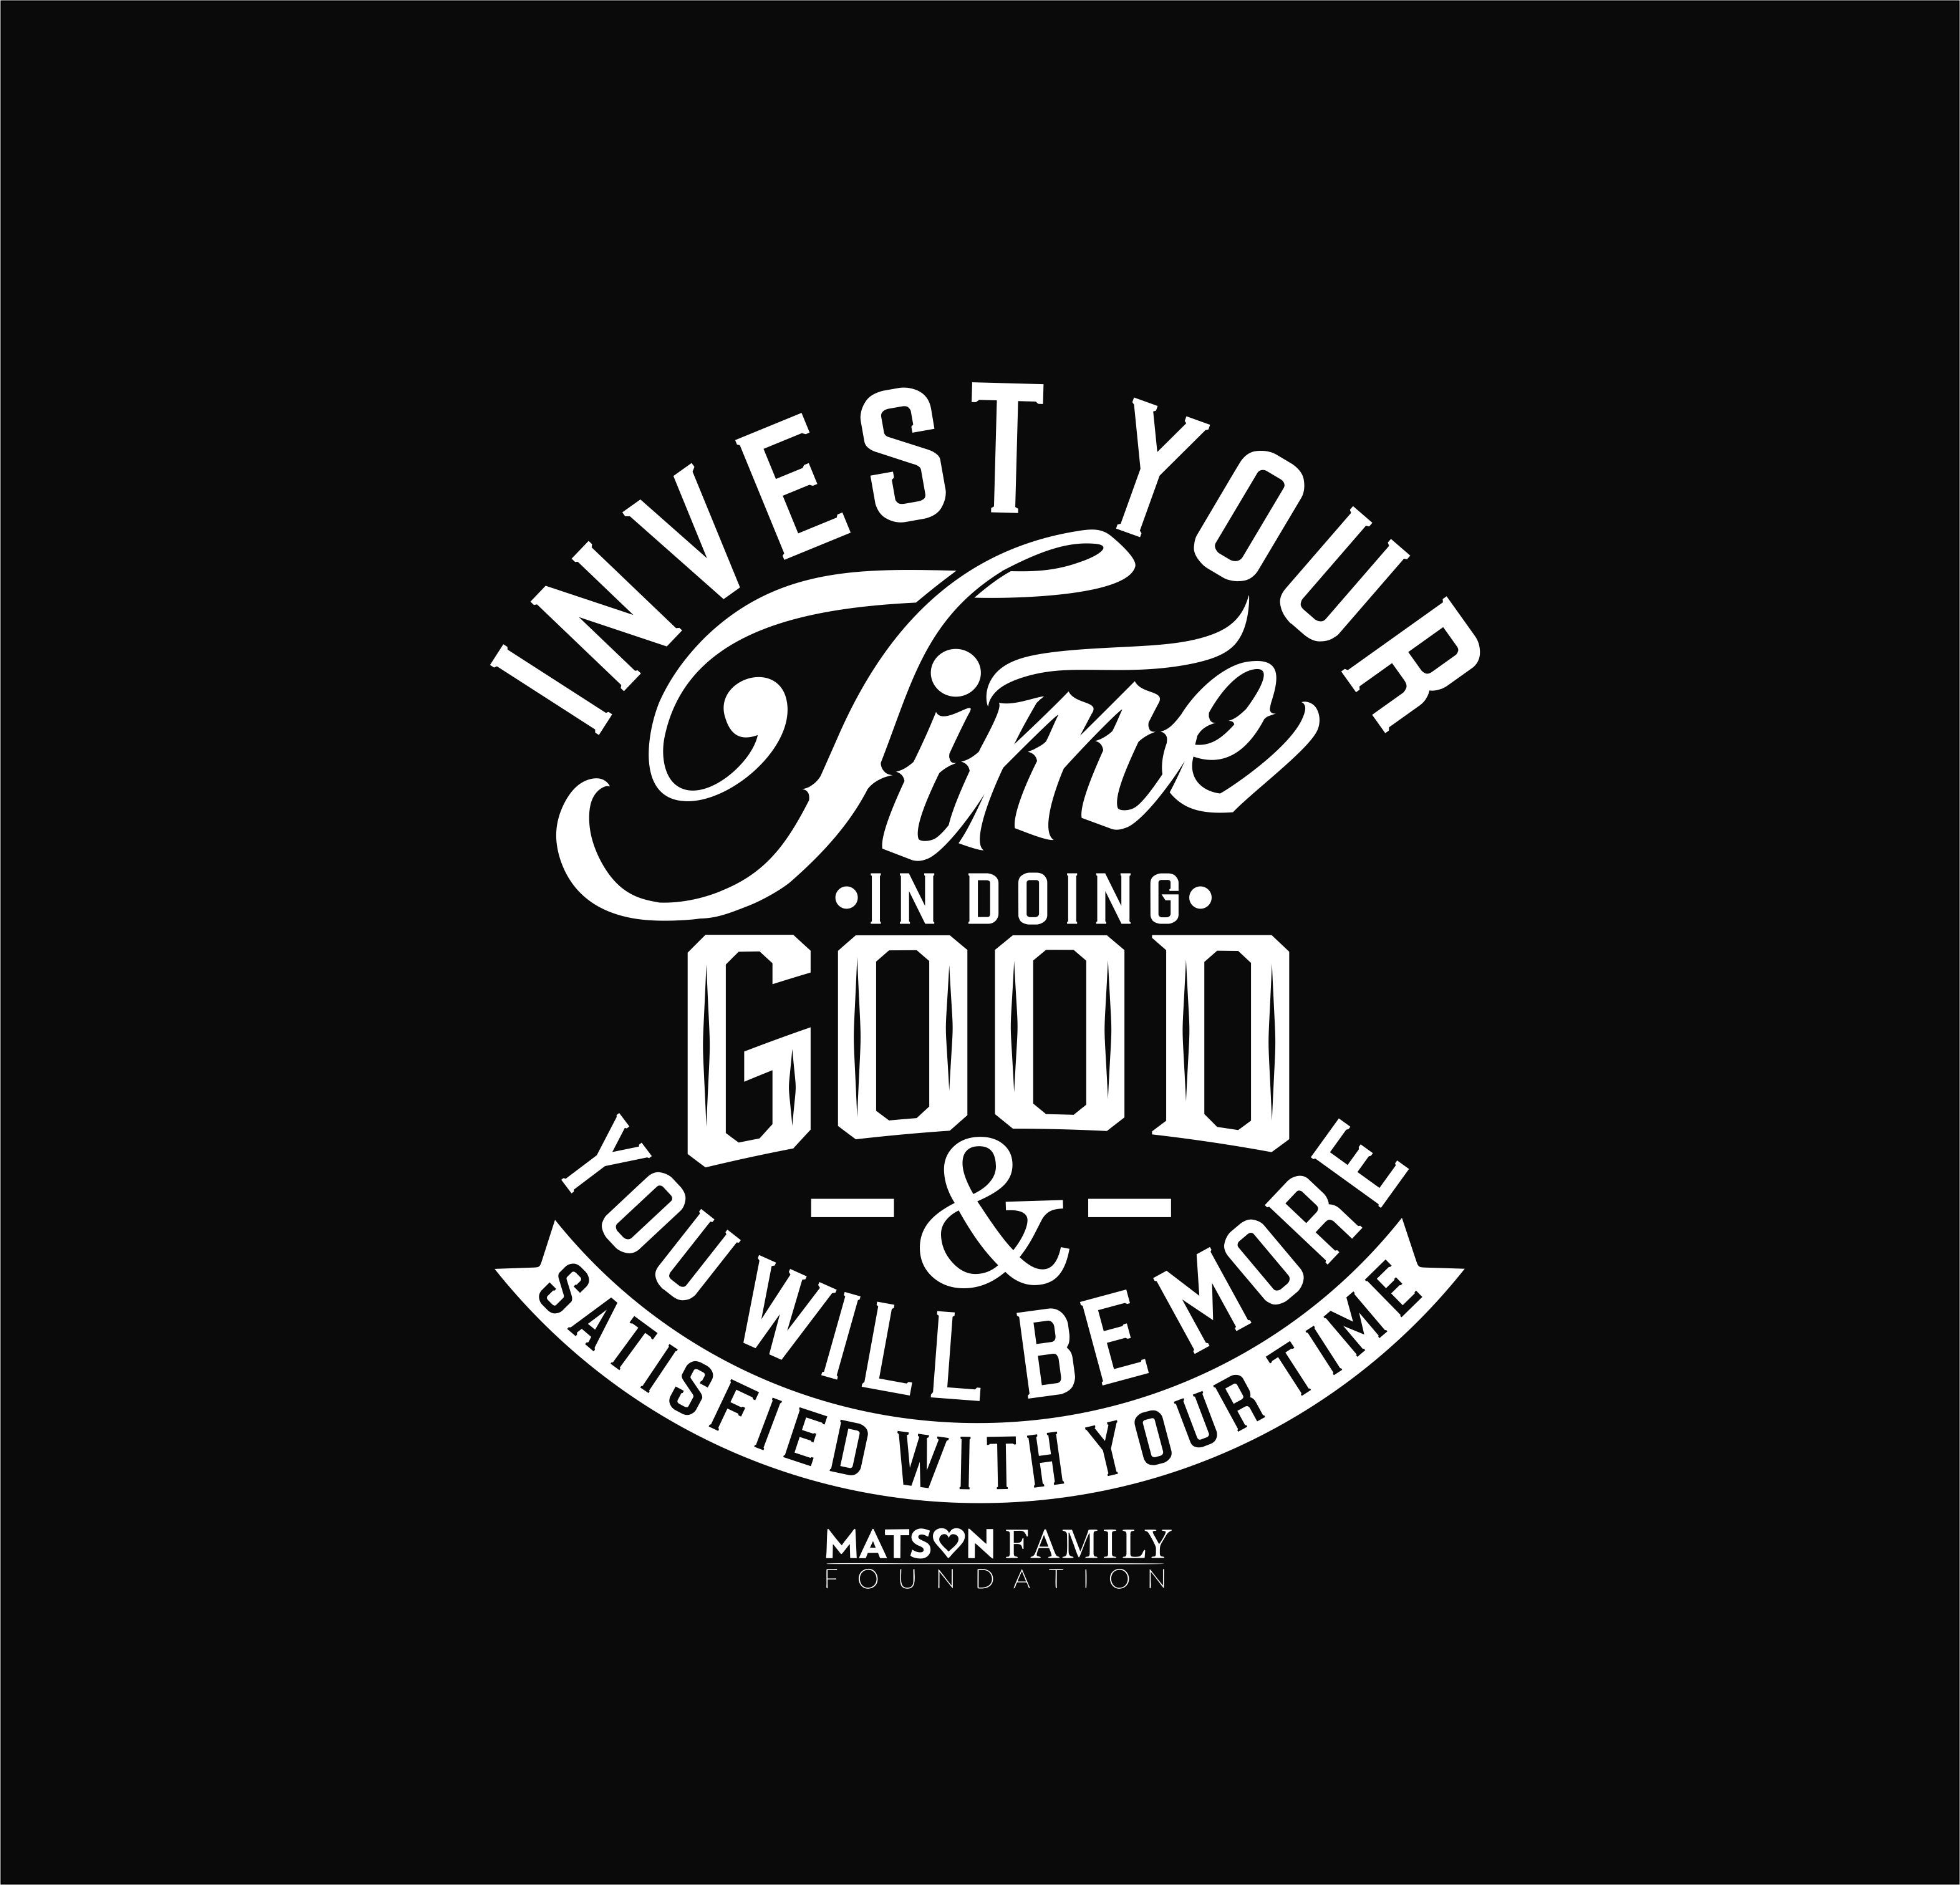 Invest your time and help us DO GOOD! Create a cool design for the Matson Family Foundation!